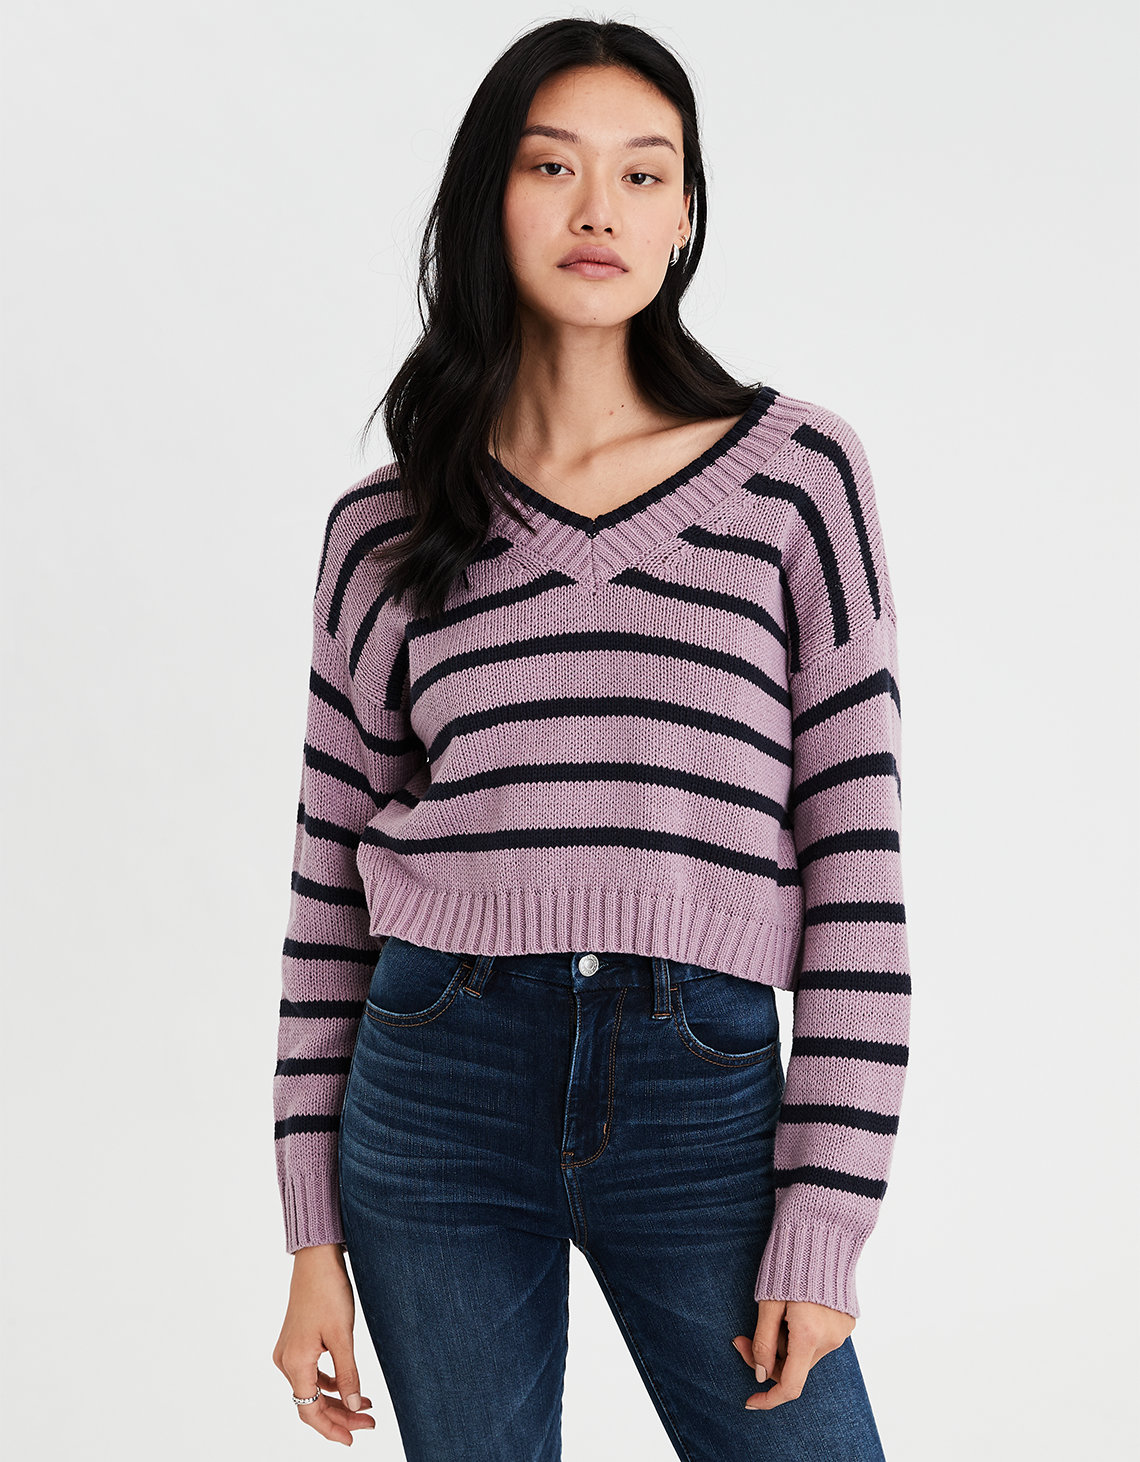 b6c7cb519c3 AE Striped V-Neck Pullover Sweater. Placeholder image. Product Image